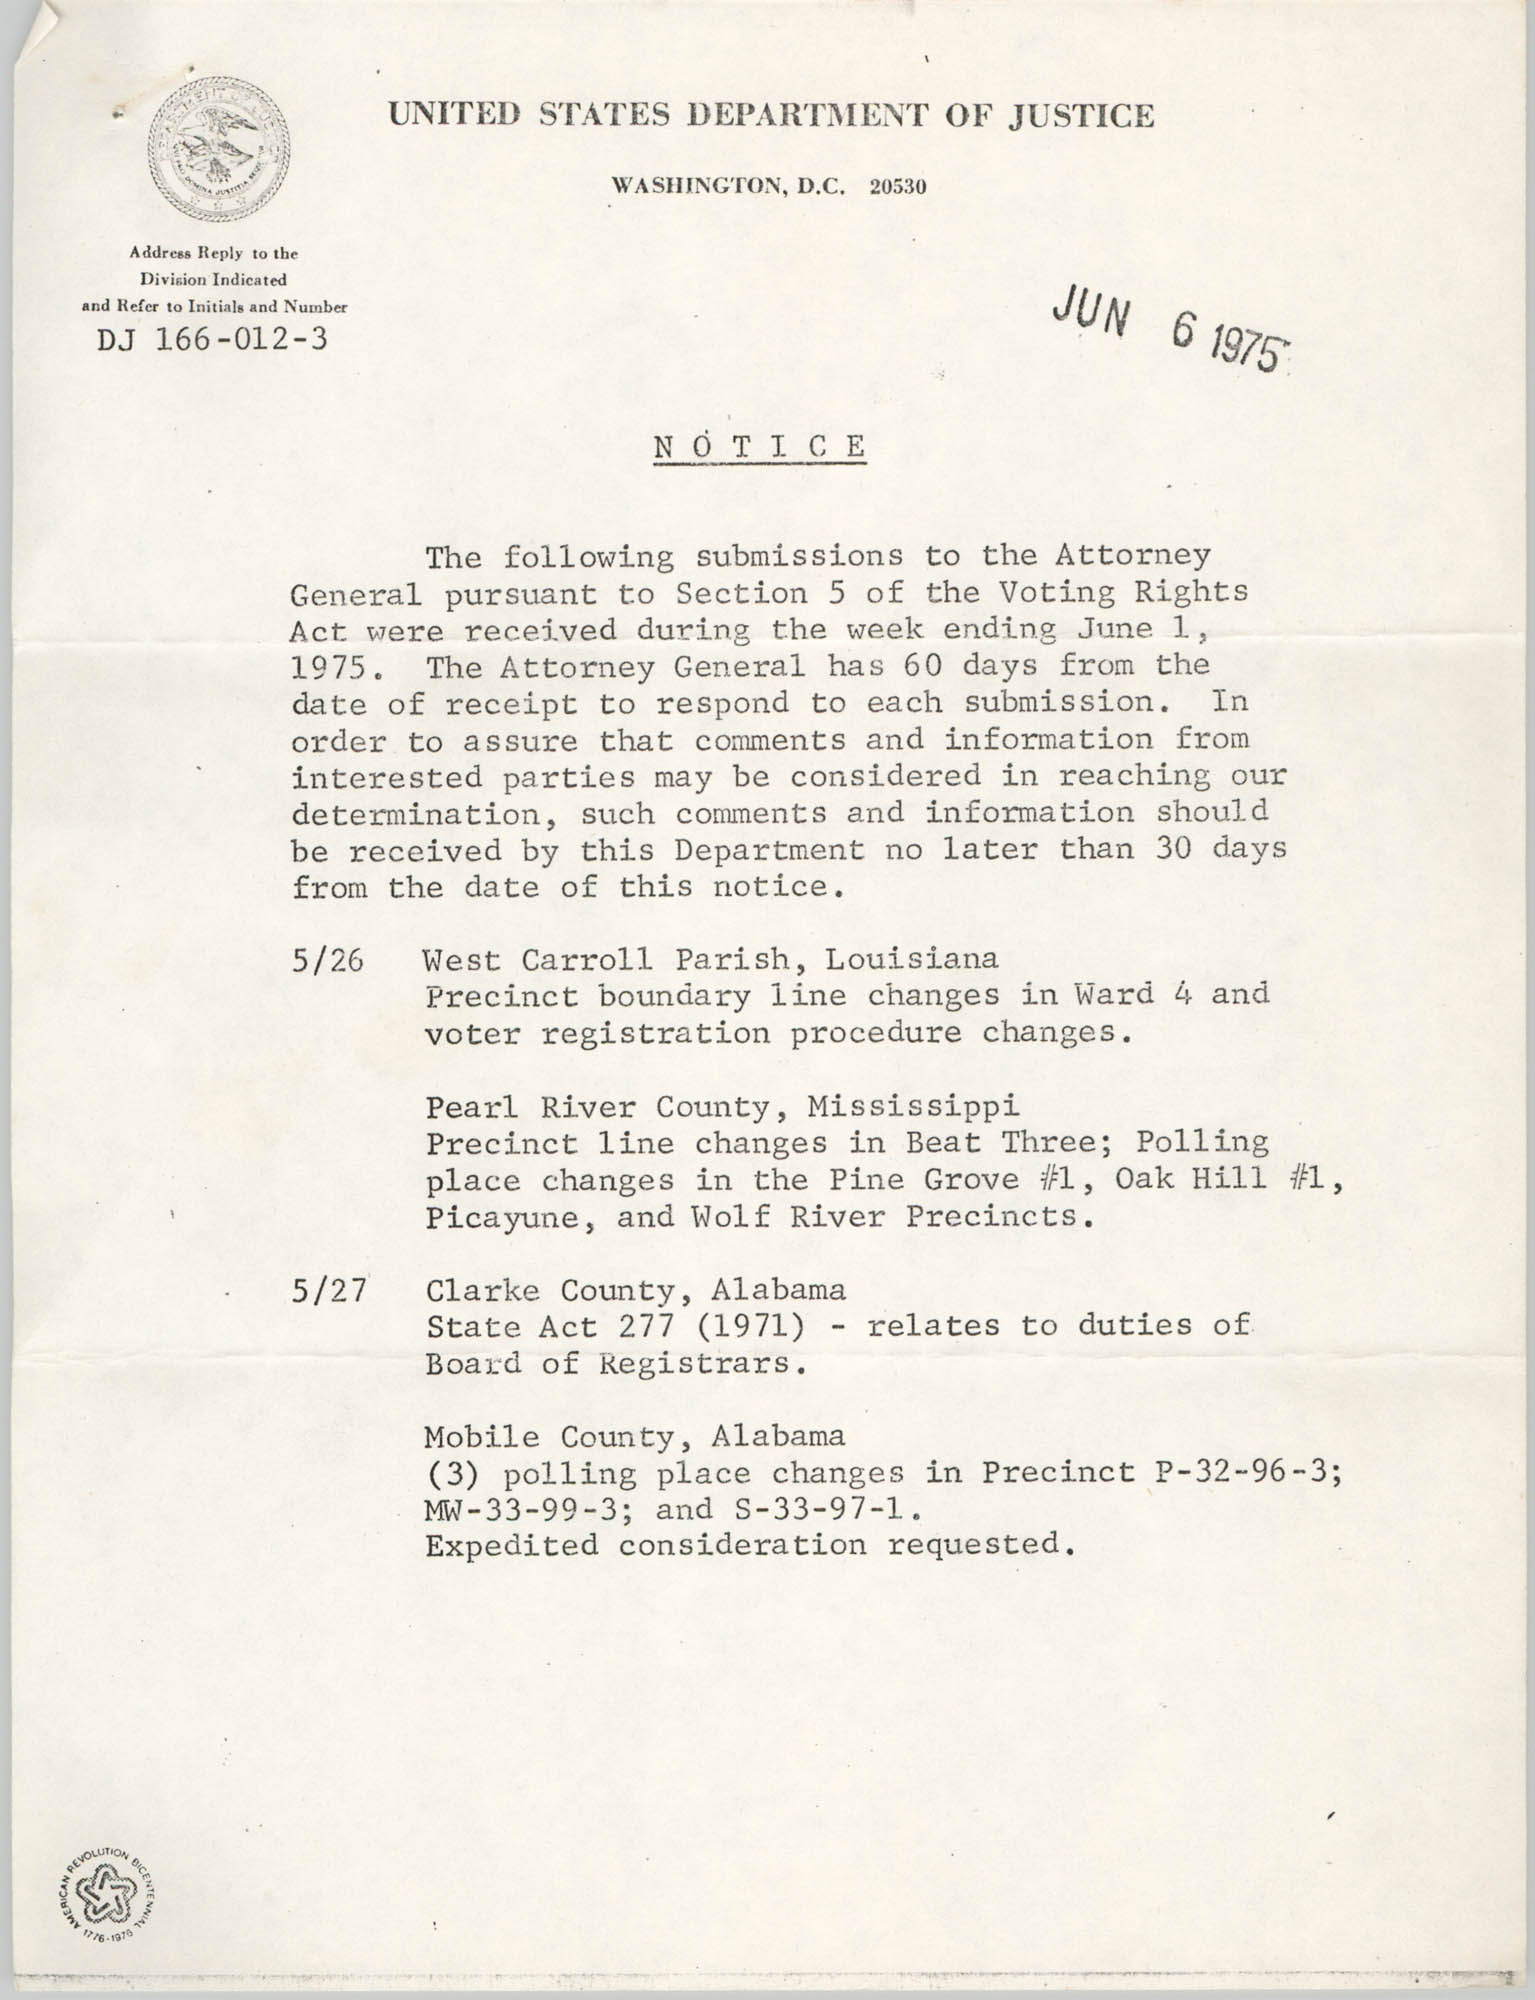 United States Department of Justice Notice, June 6, 1975